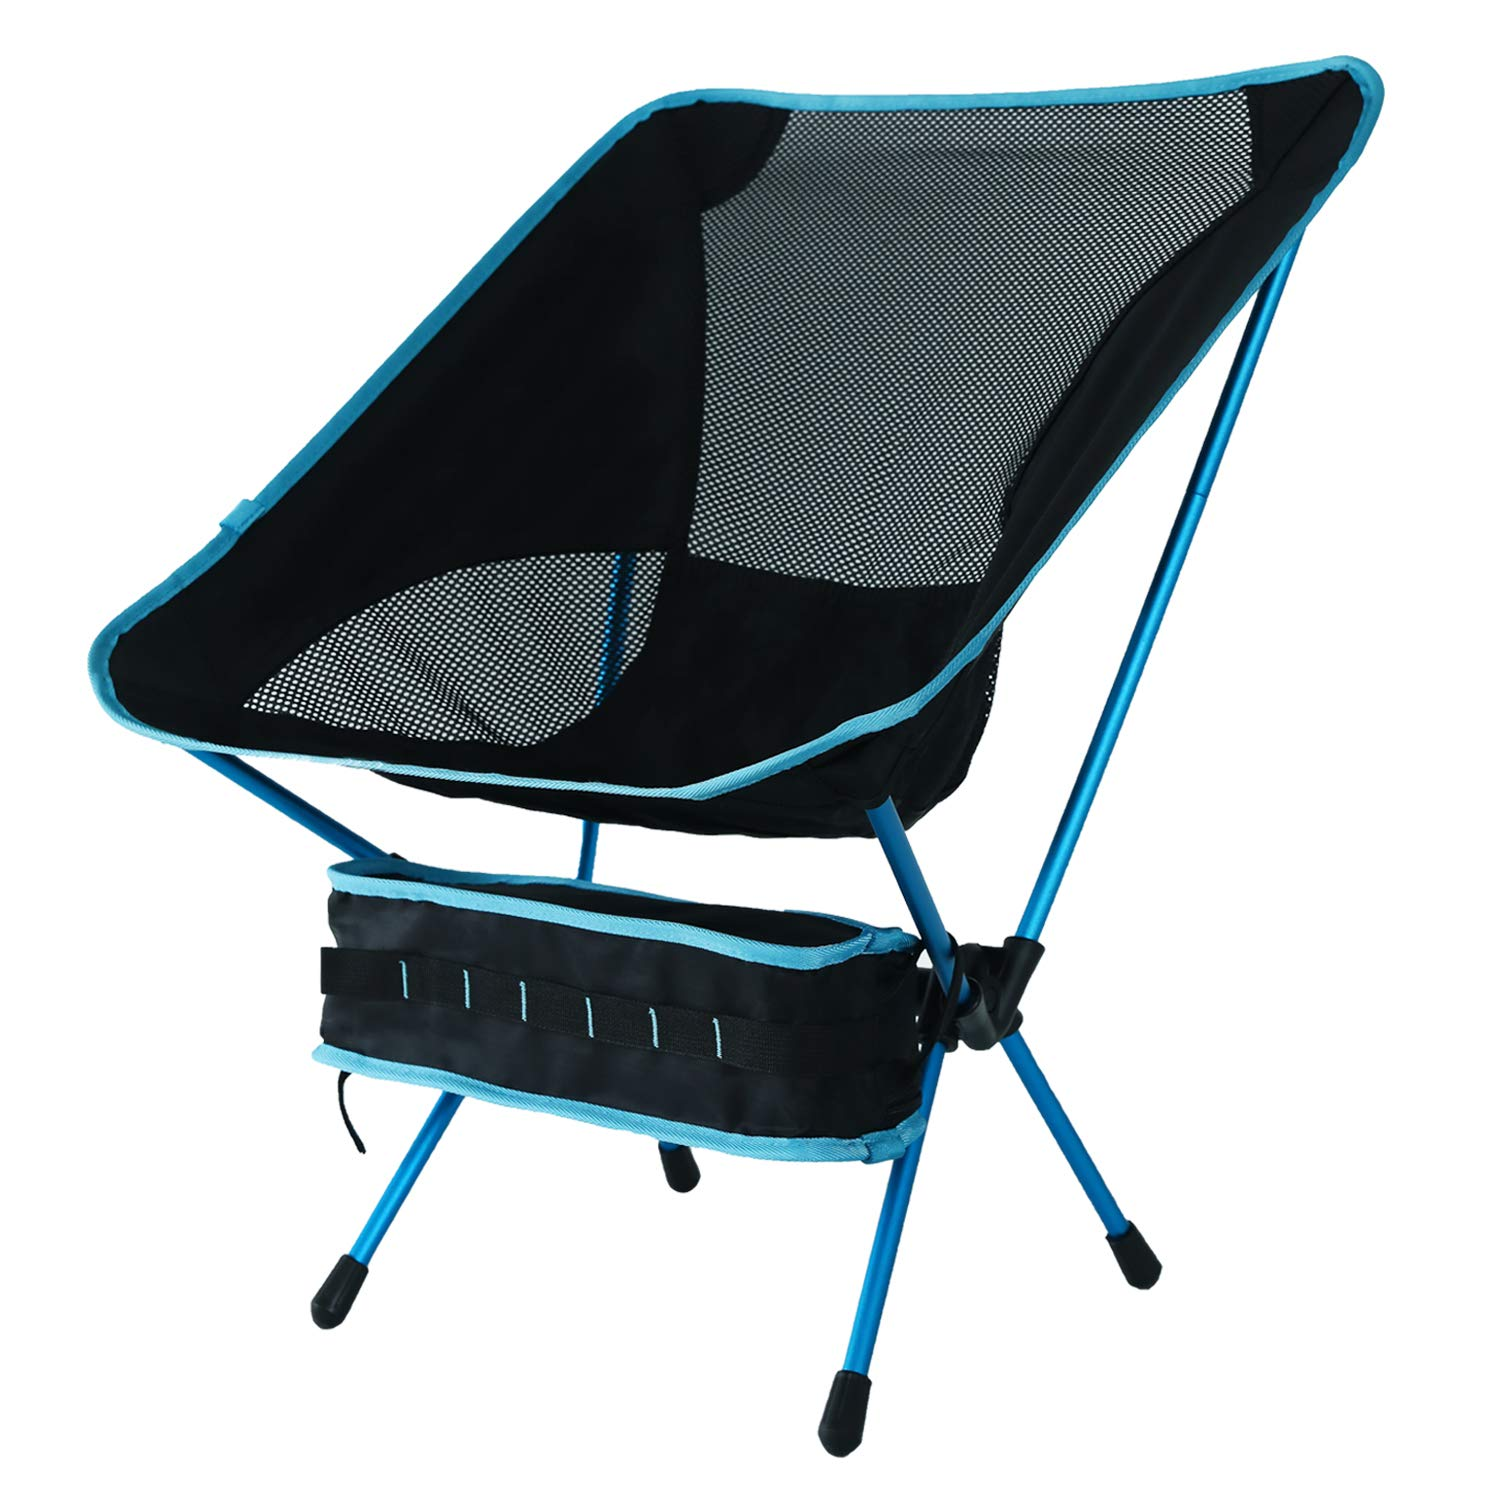 Outdoor Furniture Portable Outdoor Fishing Chair Folding Backpack Camping Oxford Cloth Foldable Picnic Fishing Beach Chairs Lightweight Easy To Repair Beach Chairs